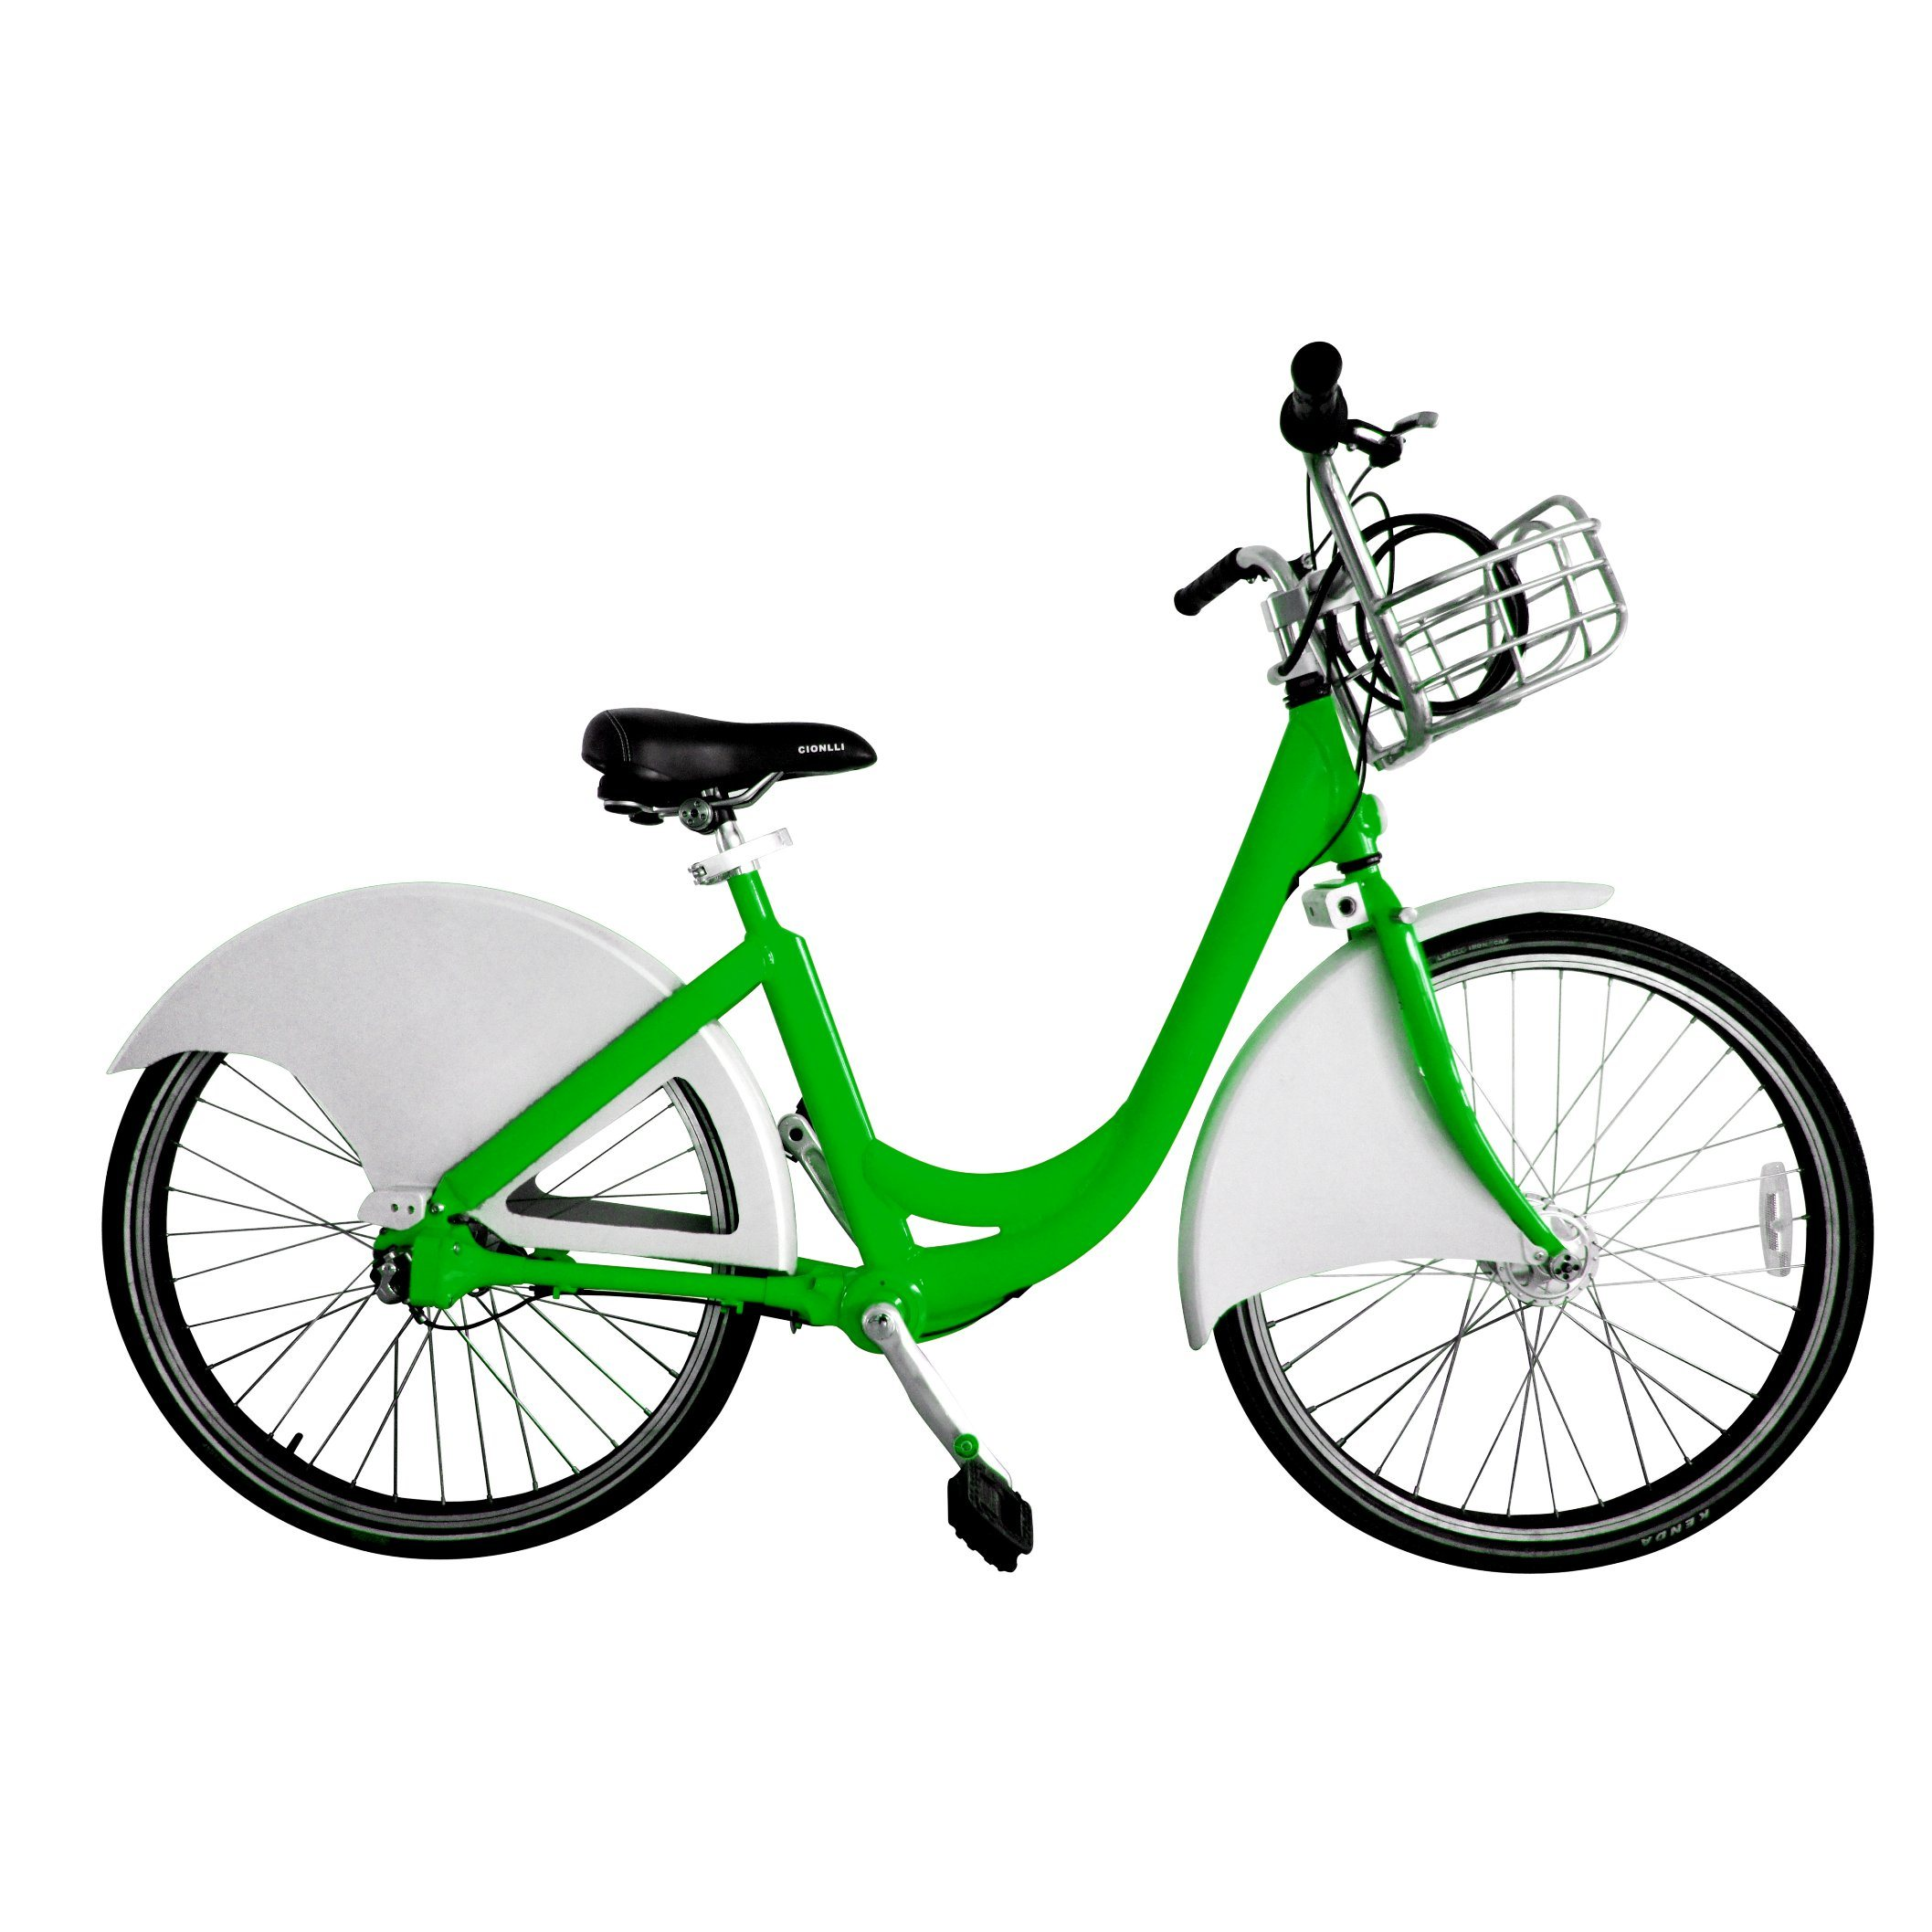 Bikes for Renting Rental System Public Sharing Bike